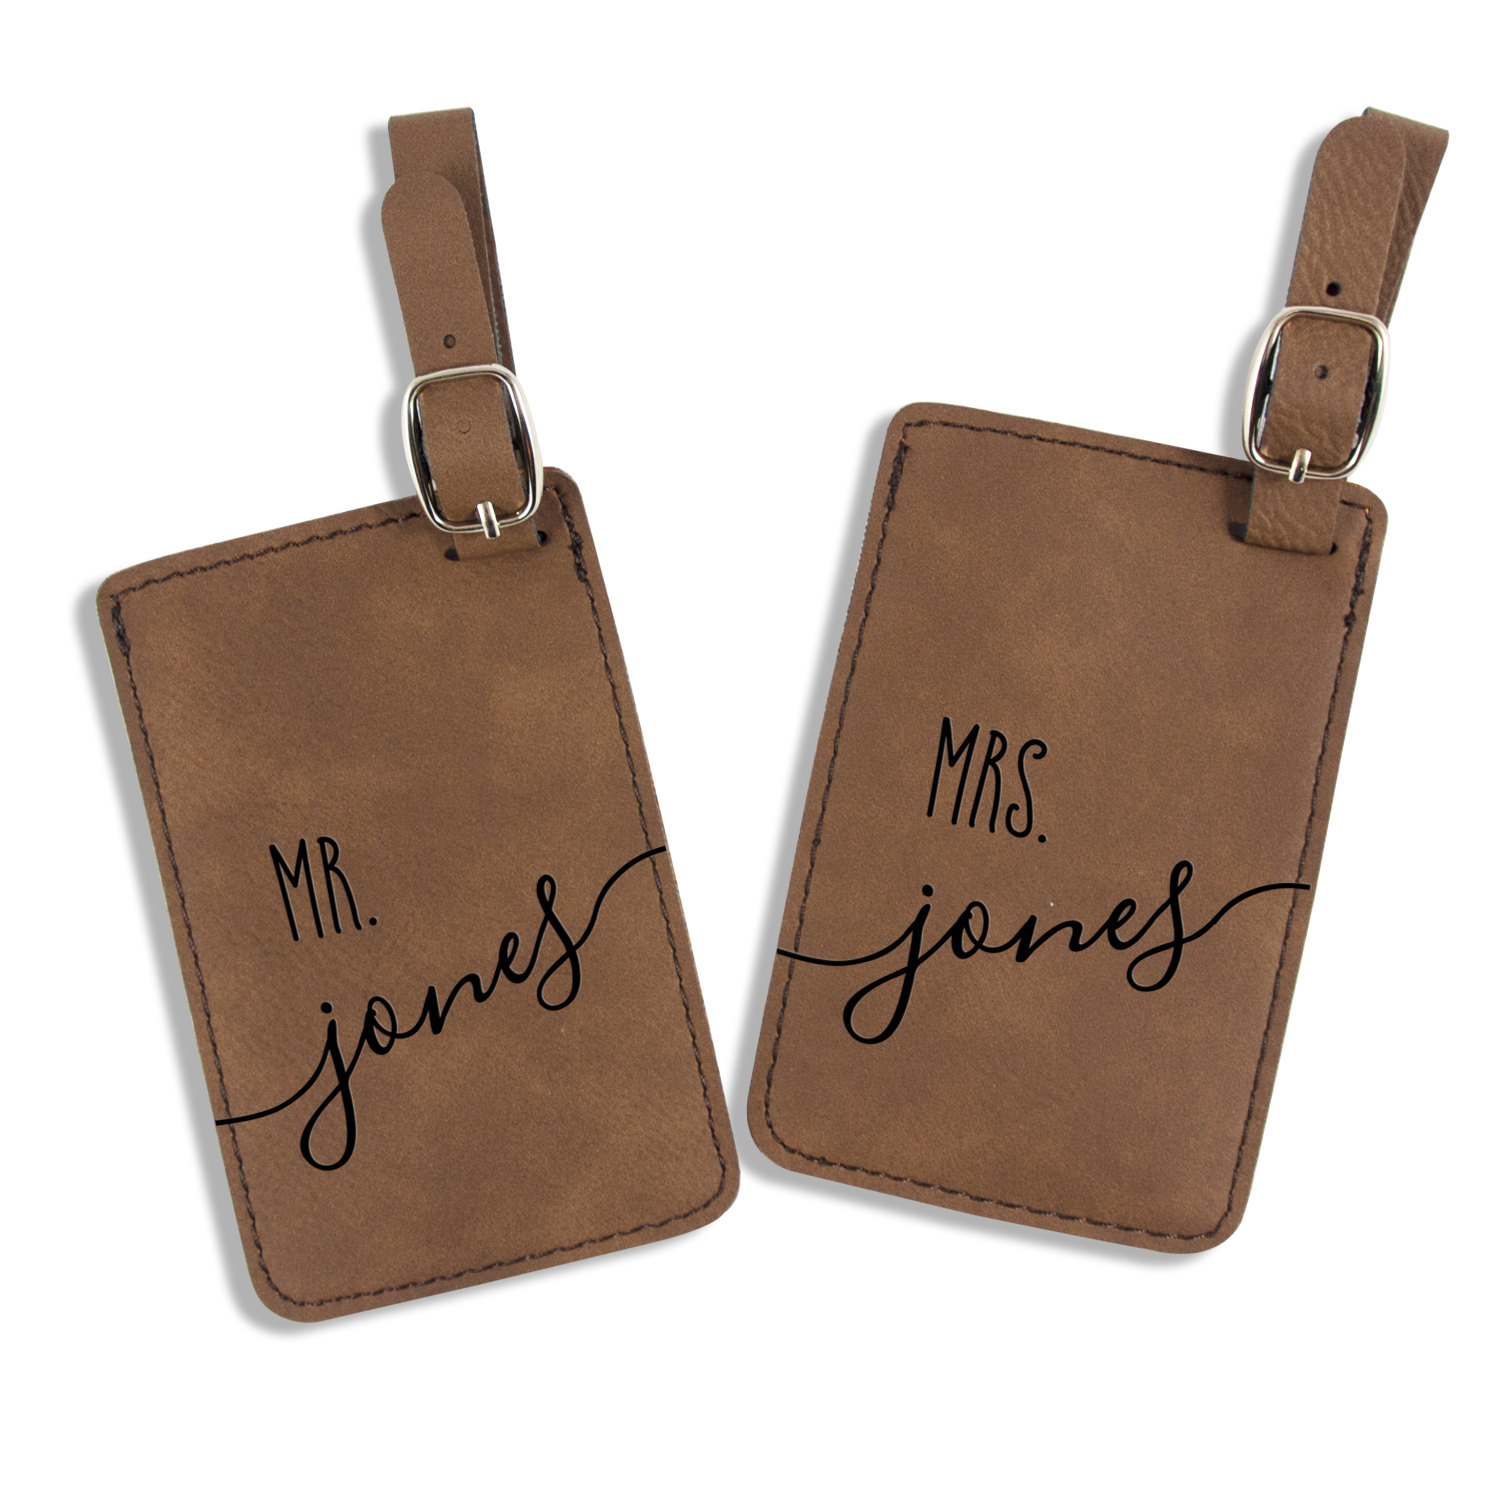 where to buy personalized luggage tags